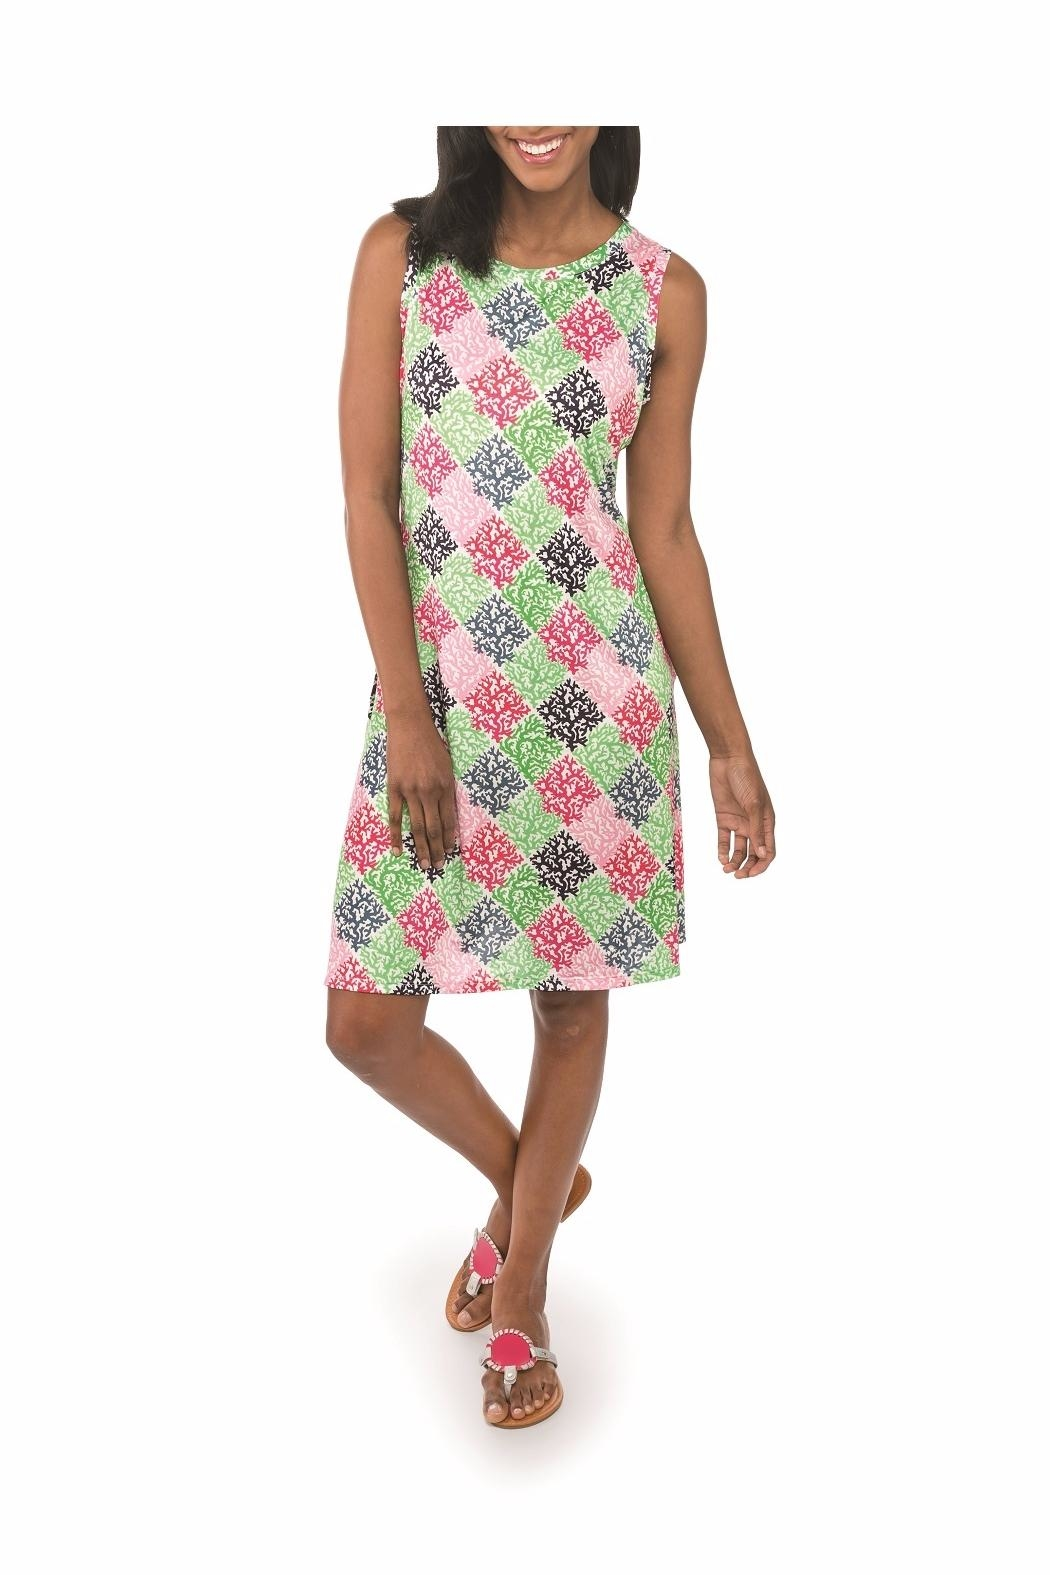 Top It Off Bella Patchwork Dress - Main Image